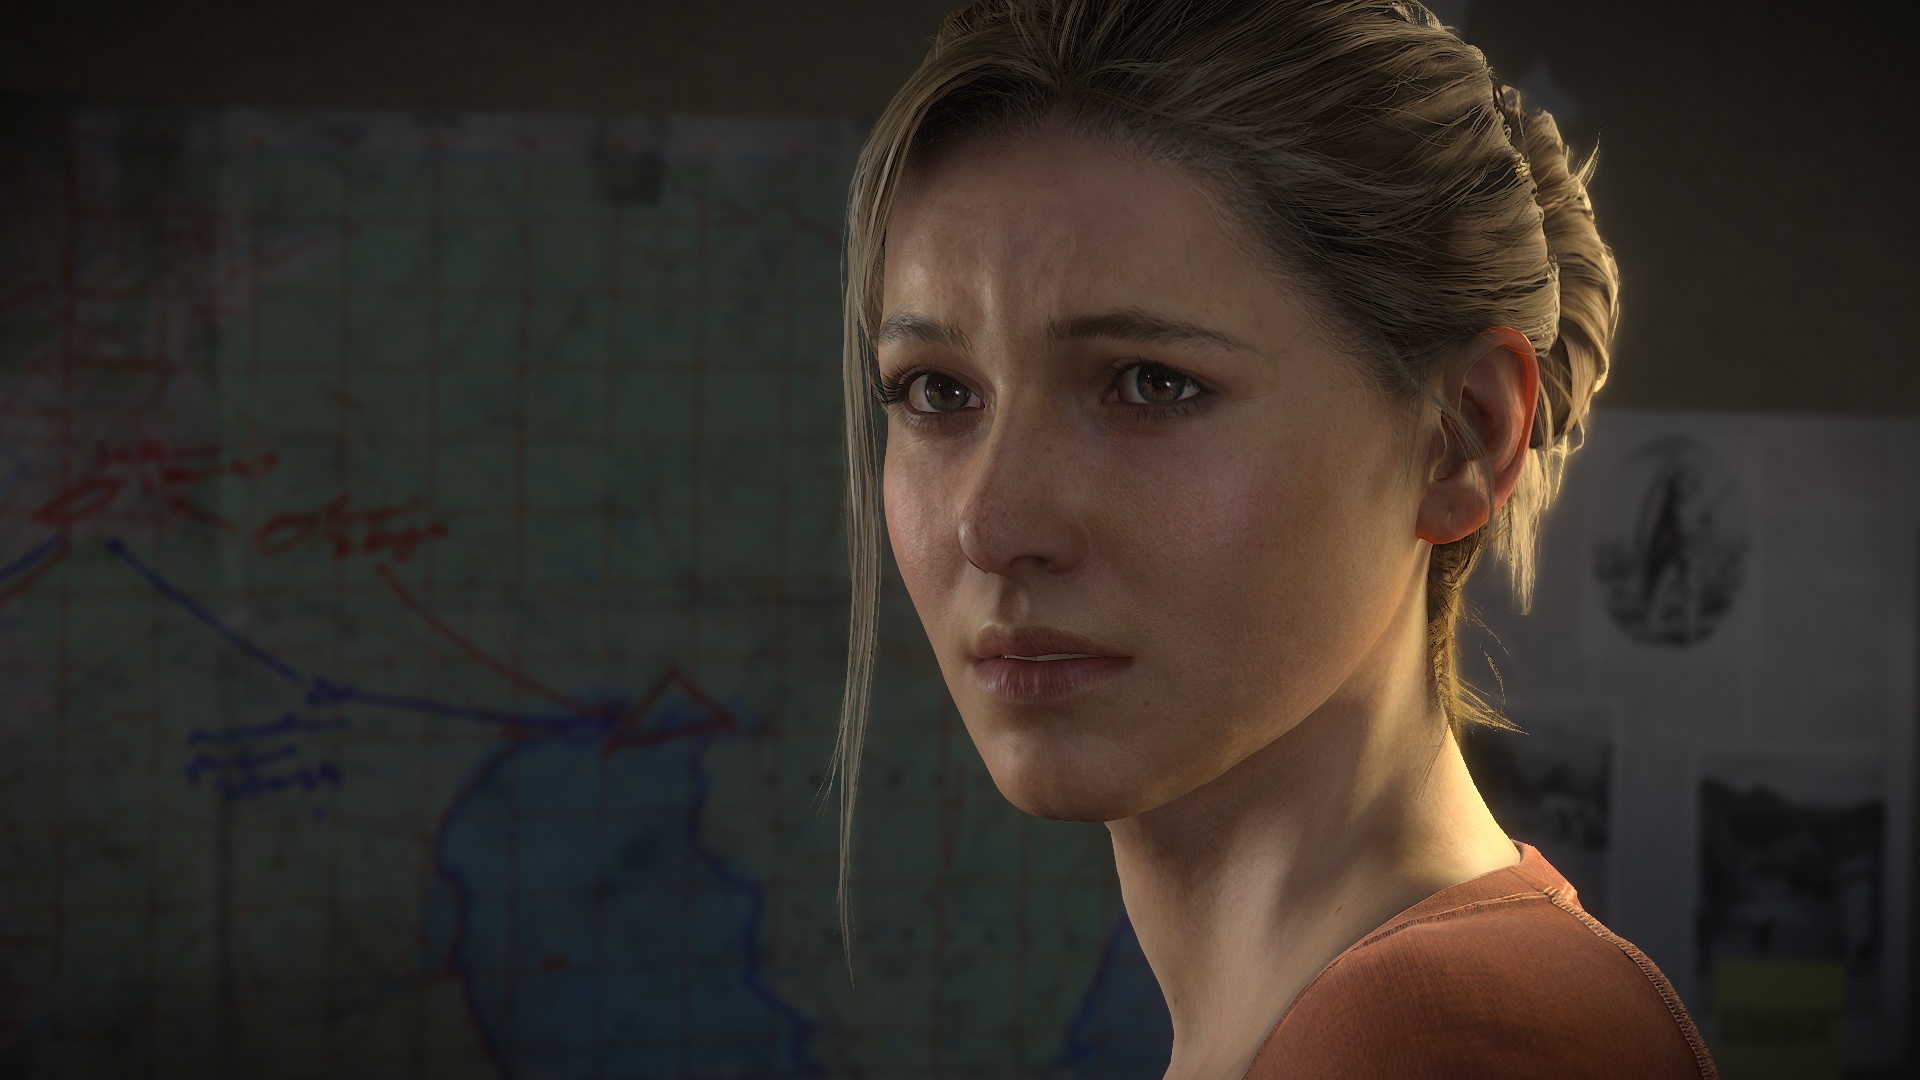 Why Uncharted 4 Devs Asked One Sexist Focus Tester To Leave